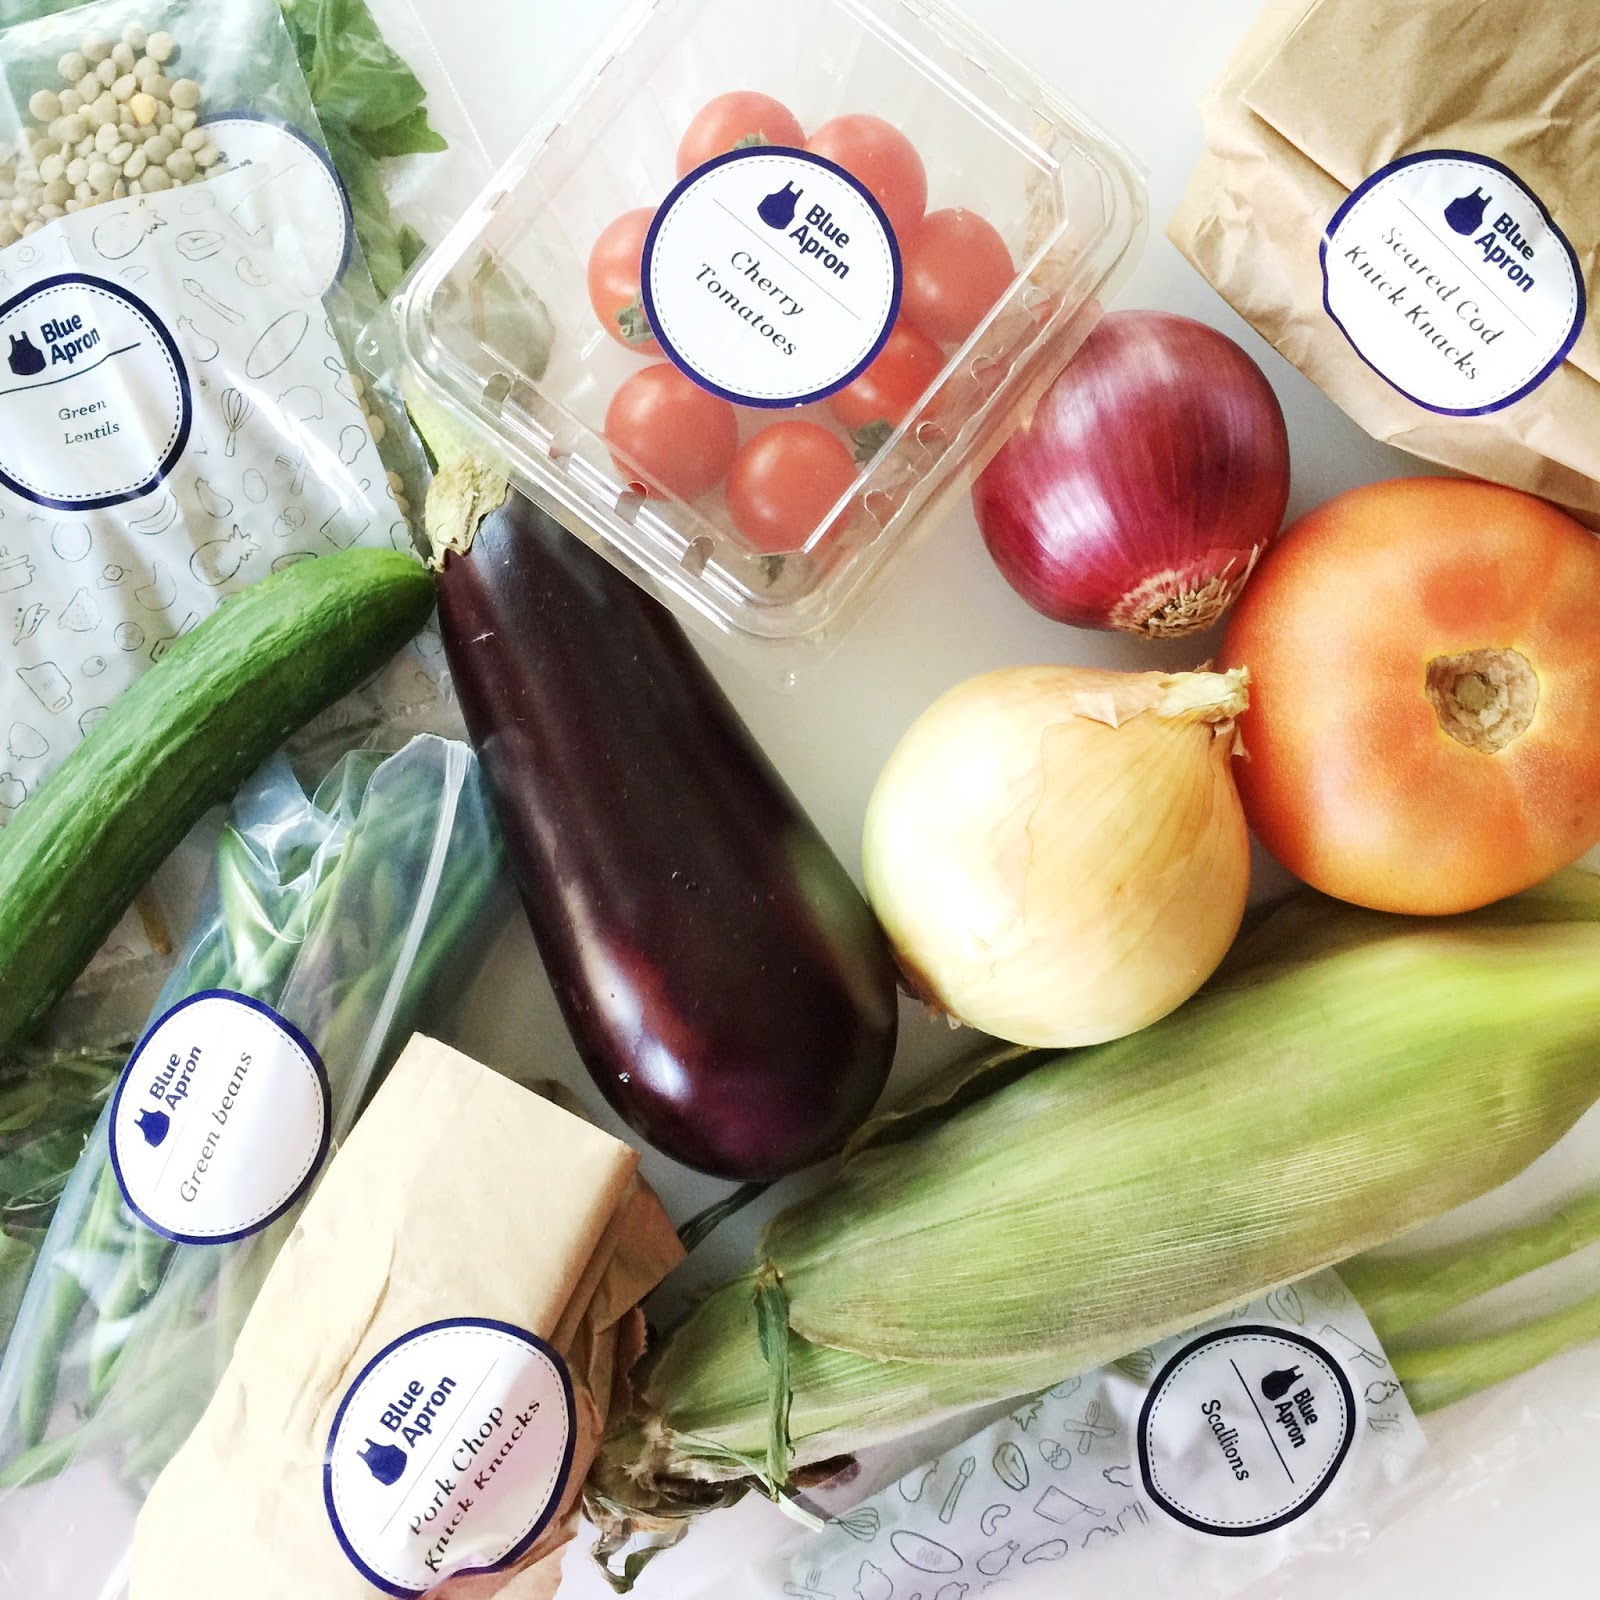 Blue apron worth it - There Were A Few Inserts About How To Cook Each One What You Would Need For Each One All Provided For You Besides Salt Pepper And Oil